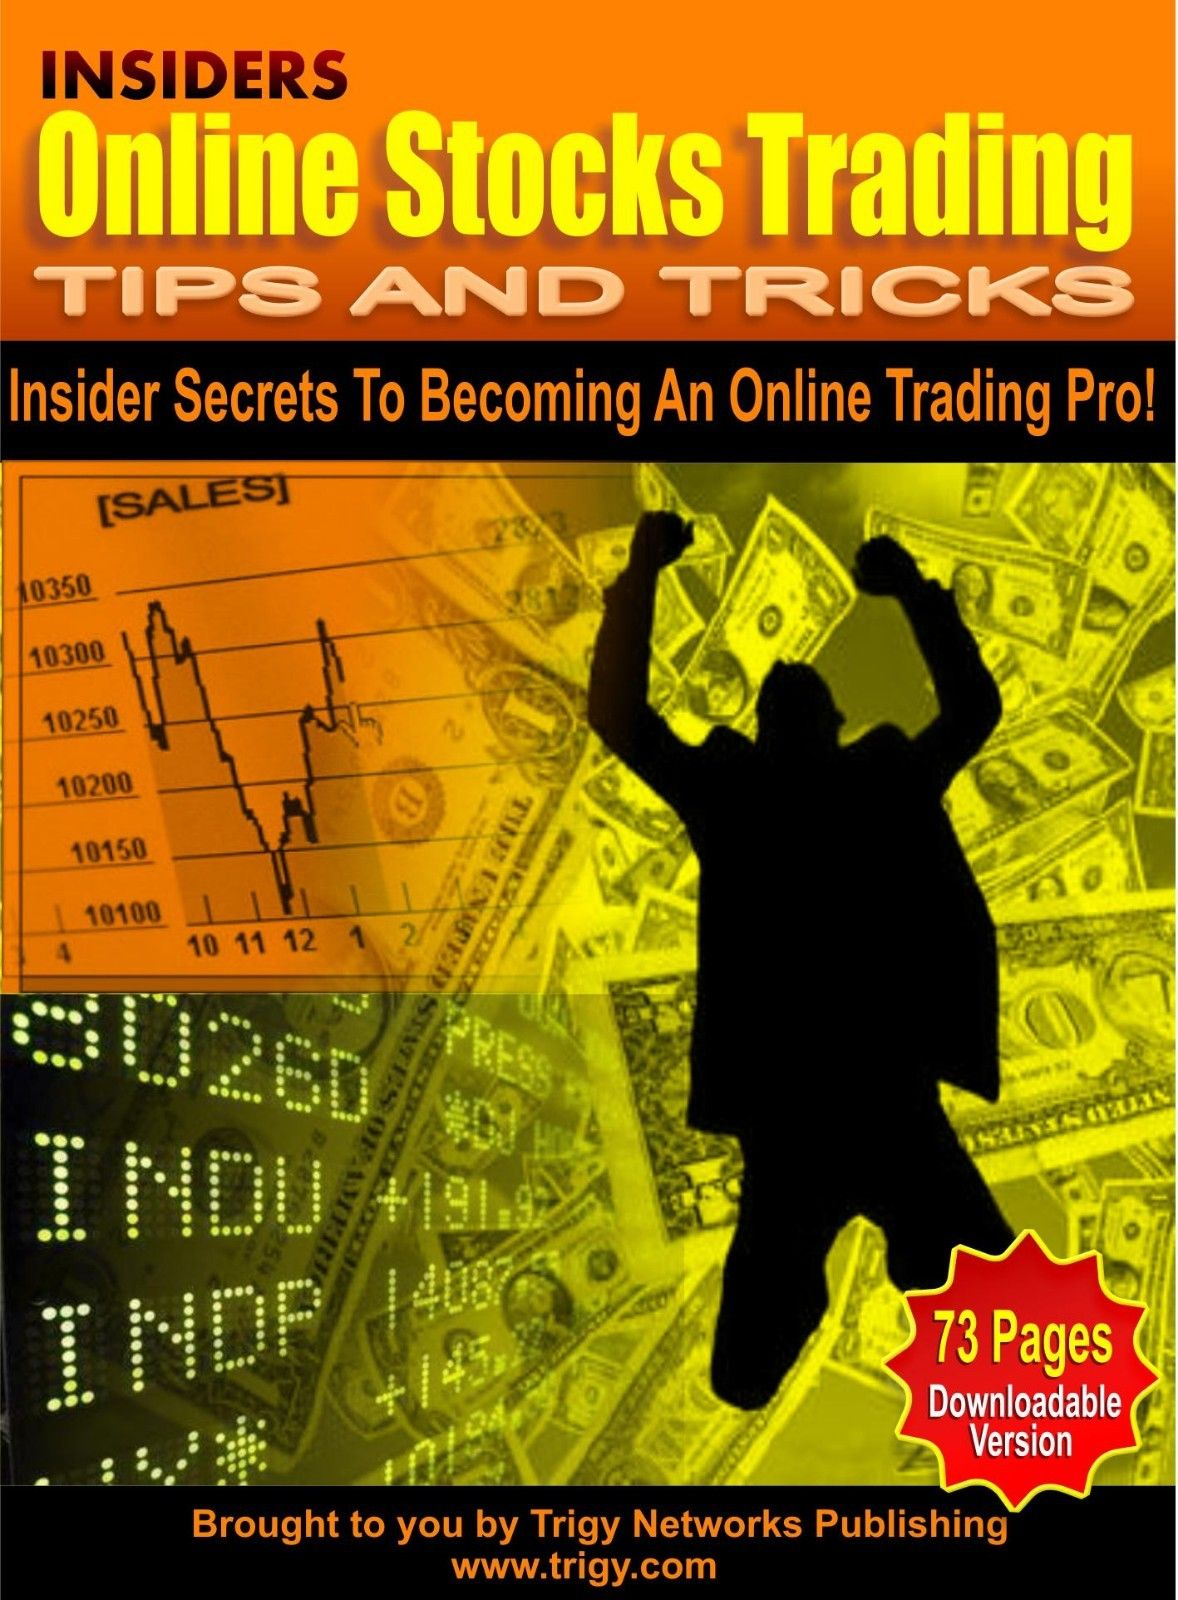 Insiders Online Stock Trading Tips and Tricks PDF eBook Master Resell Rights MRR